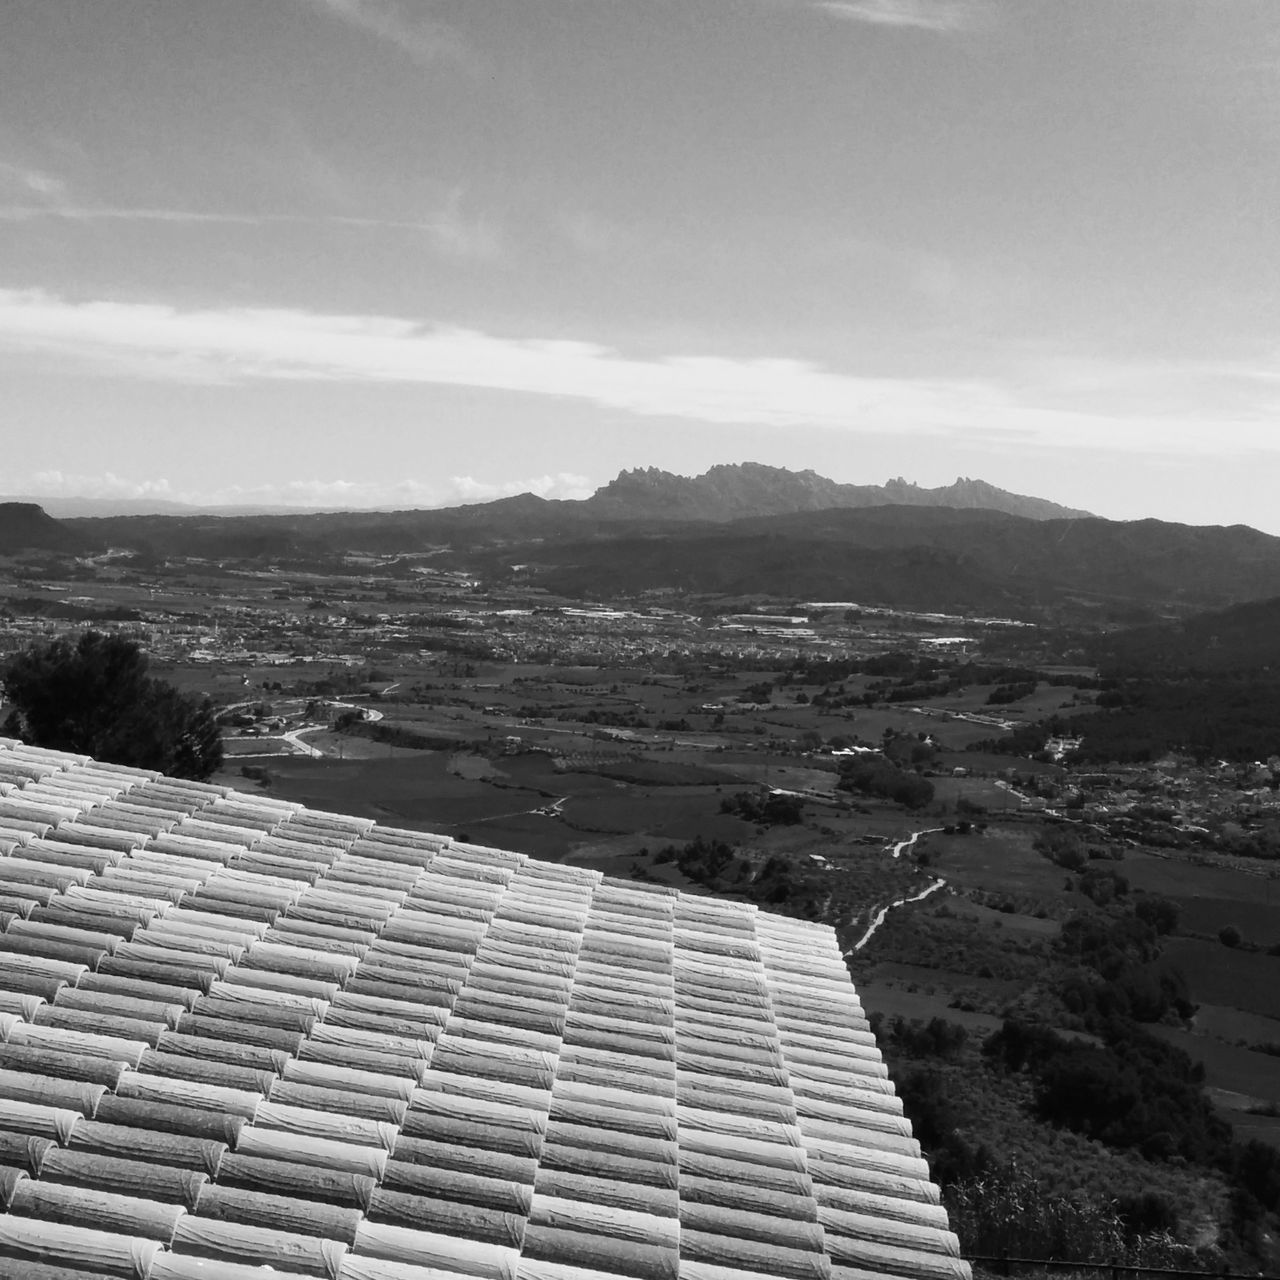 solar panel, solar energy, built structure, alternative energy, mountain, roof, renewable energy, day, fuel and power generation, architecture, house, nature, building exterior, solar equipment, sky, no people, outdoors, mountain range, tiled roof, beauty in nature, scenics